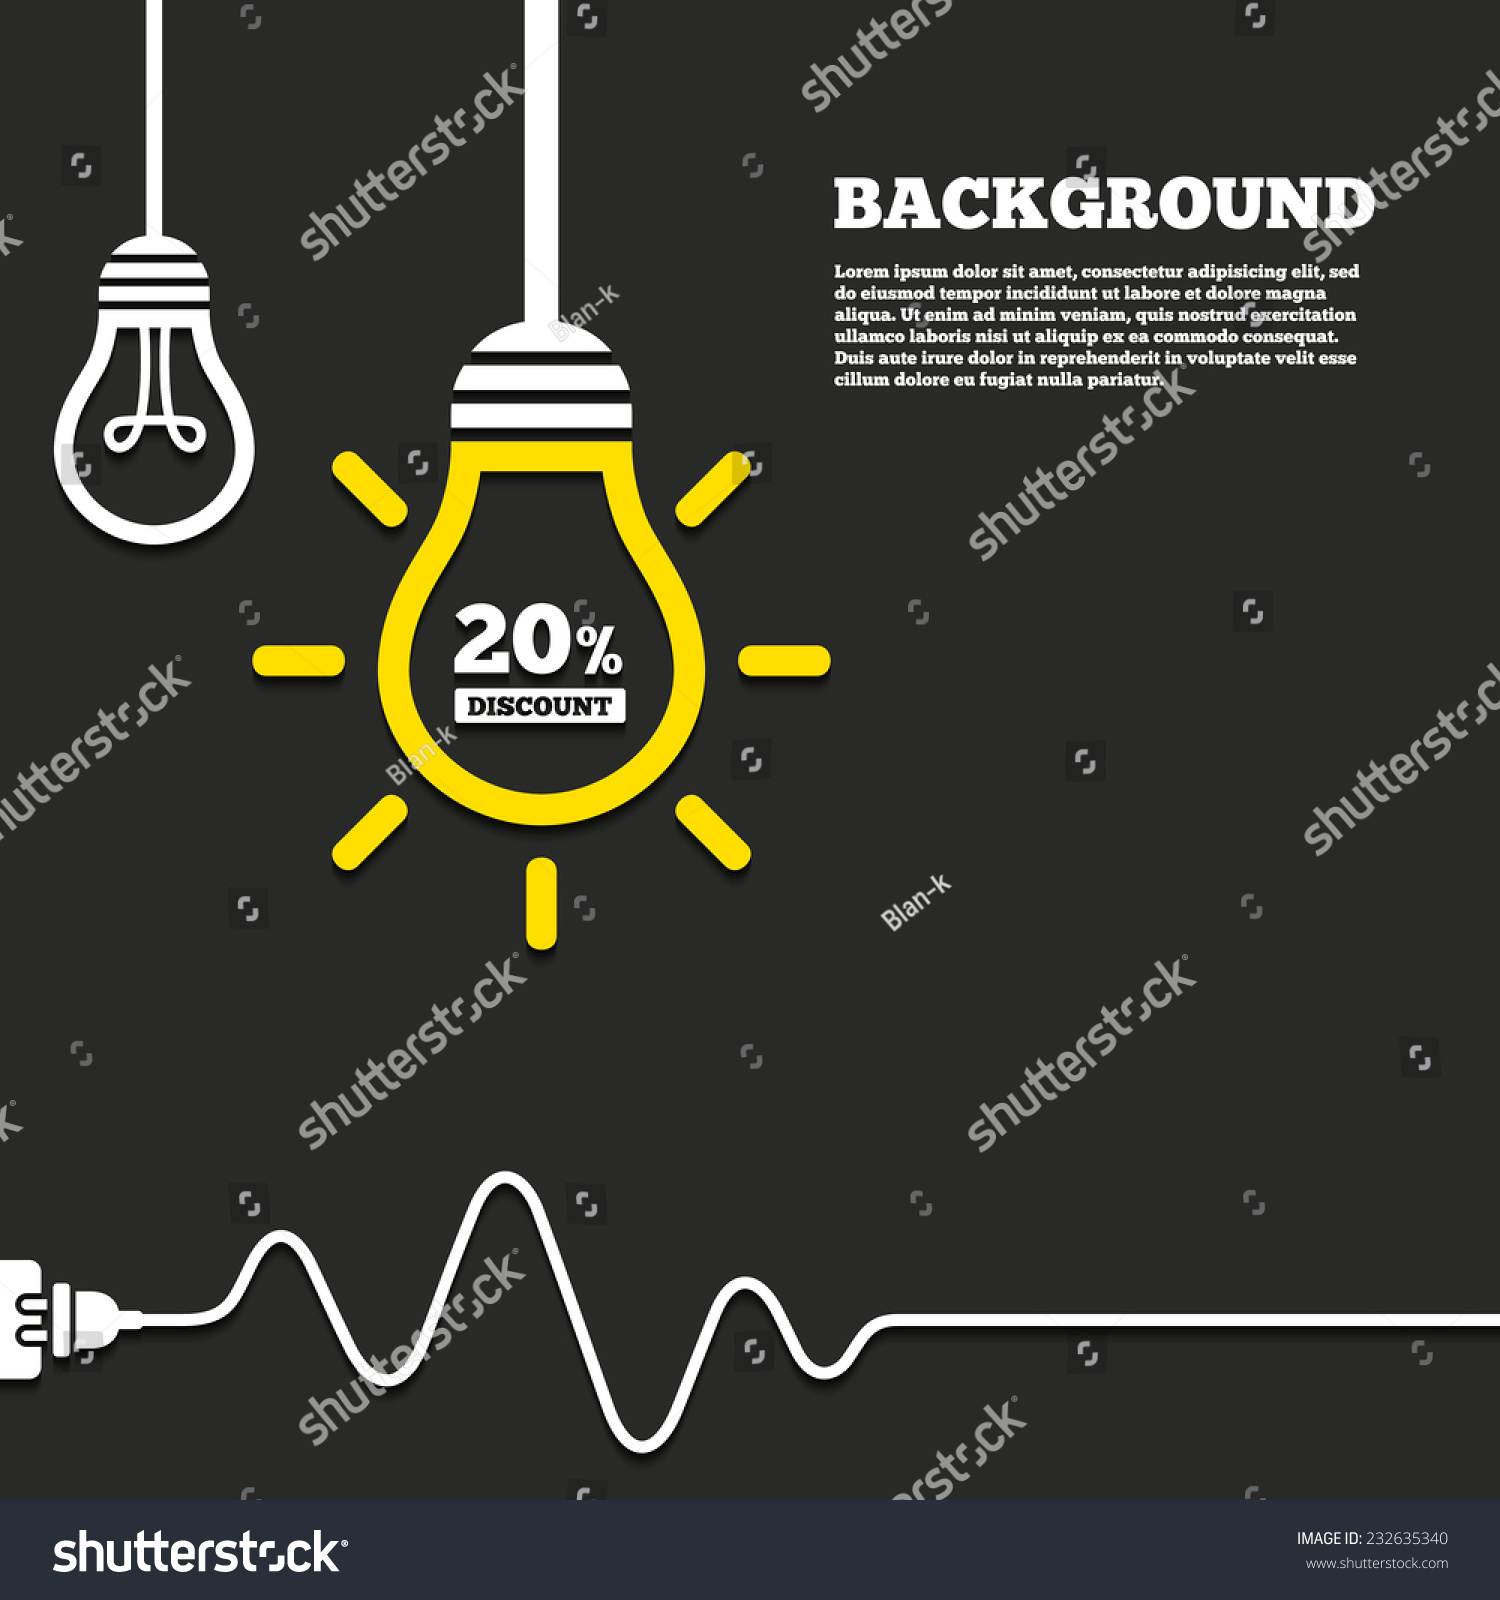 Idea lamp electric plug background 20 stock vector 232635340 idea lamp with electric plug background 20 percent discount sign icon sale symbol ccuart Image collections